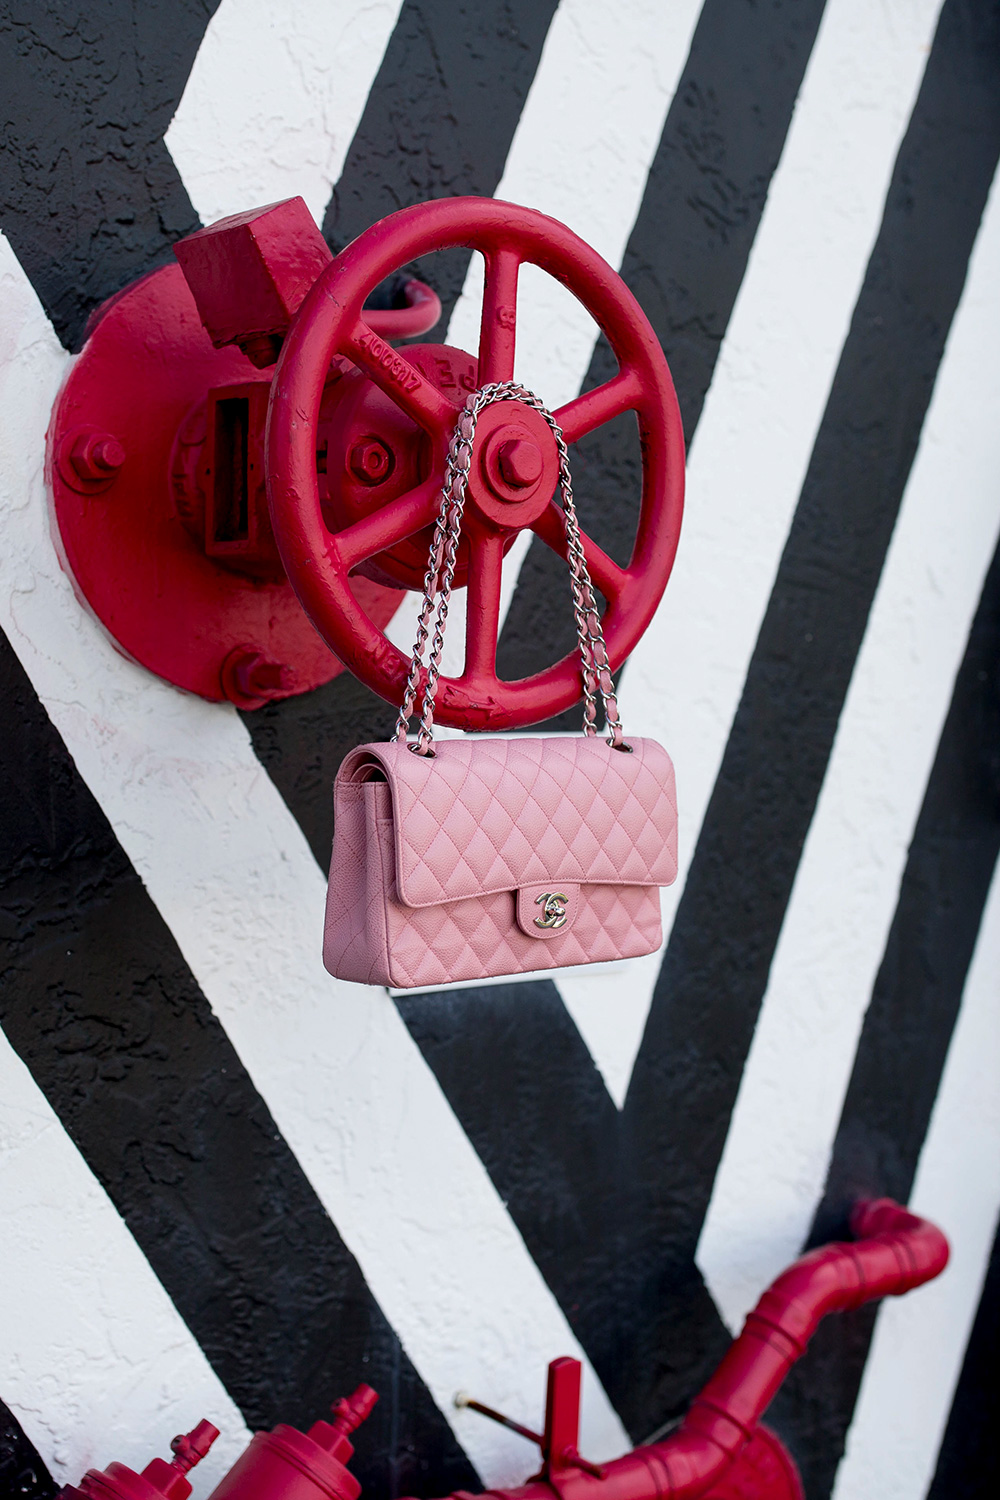 Chanel Pink Quilted Flap Bag